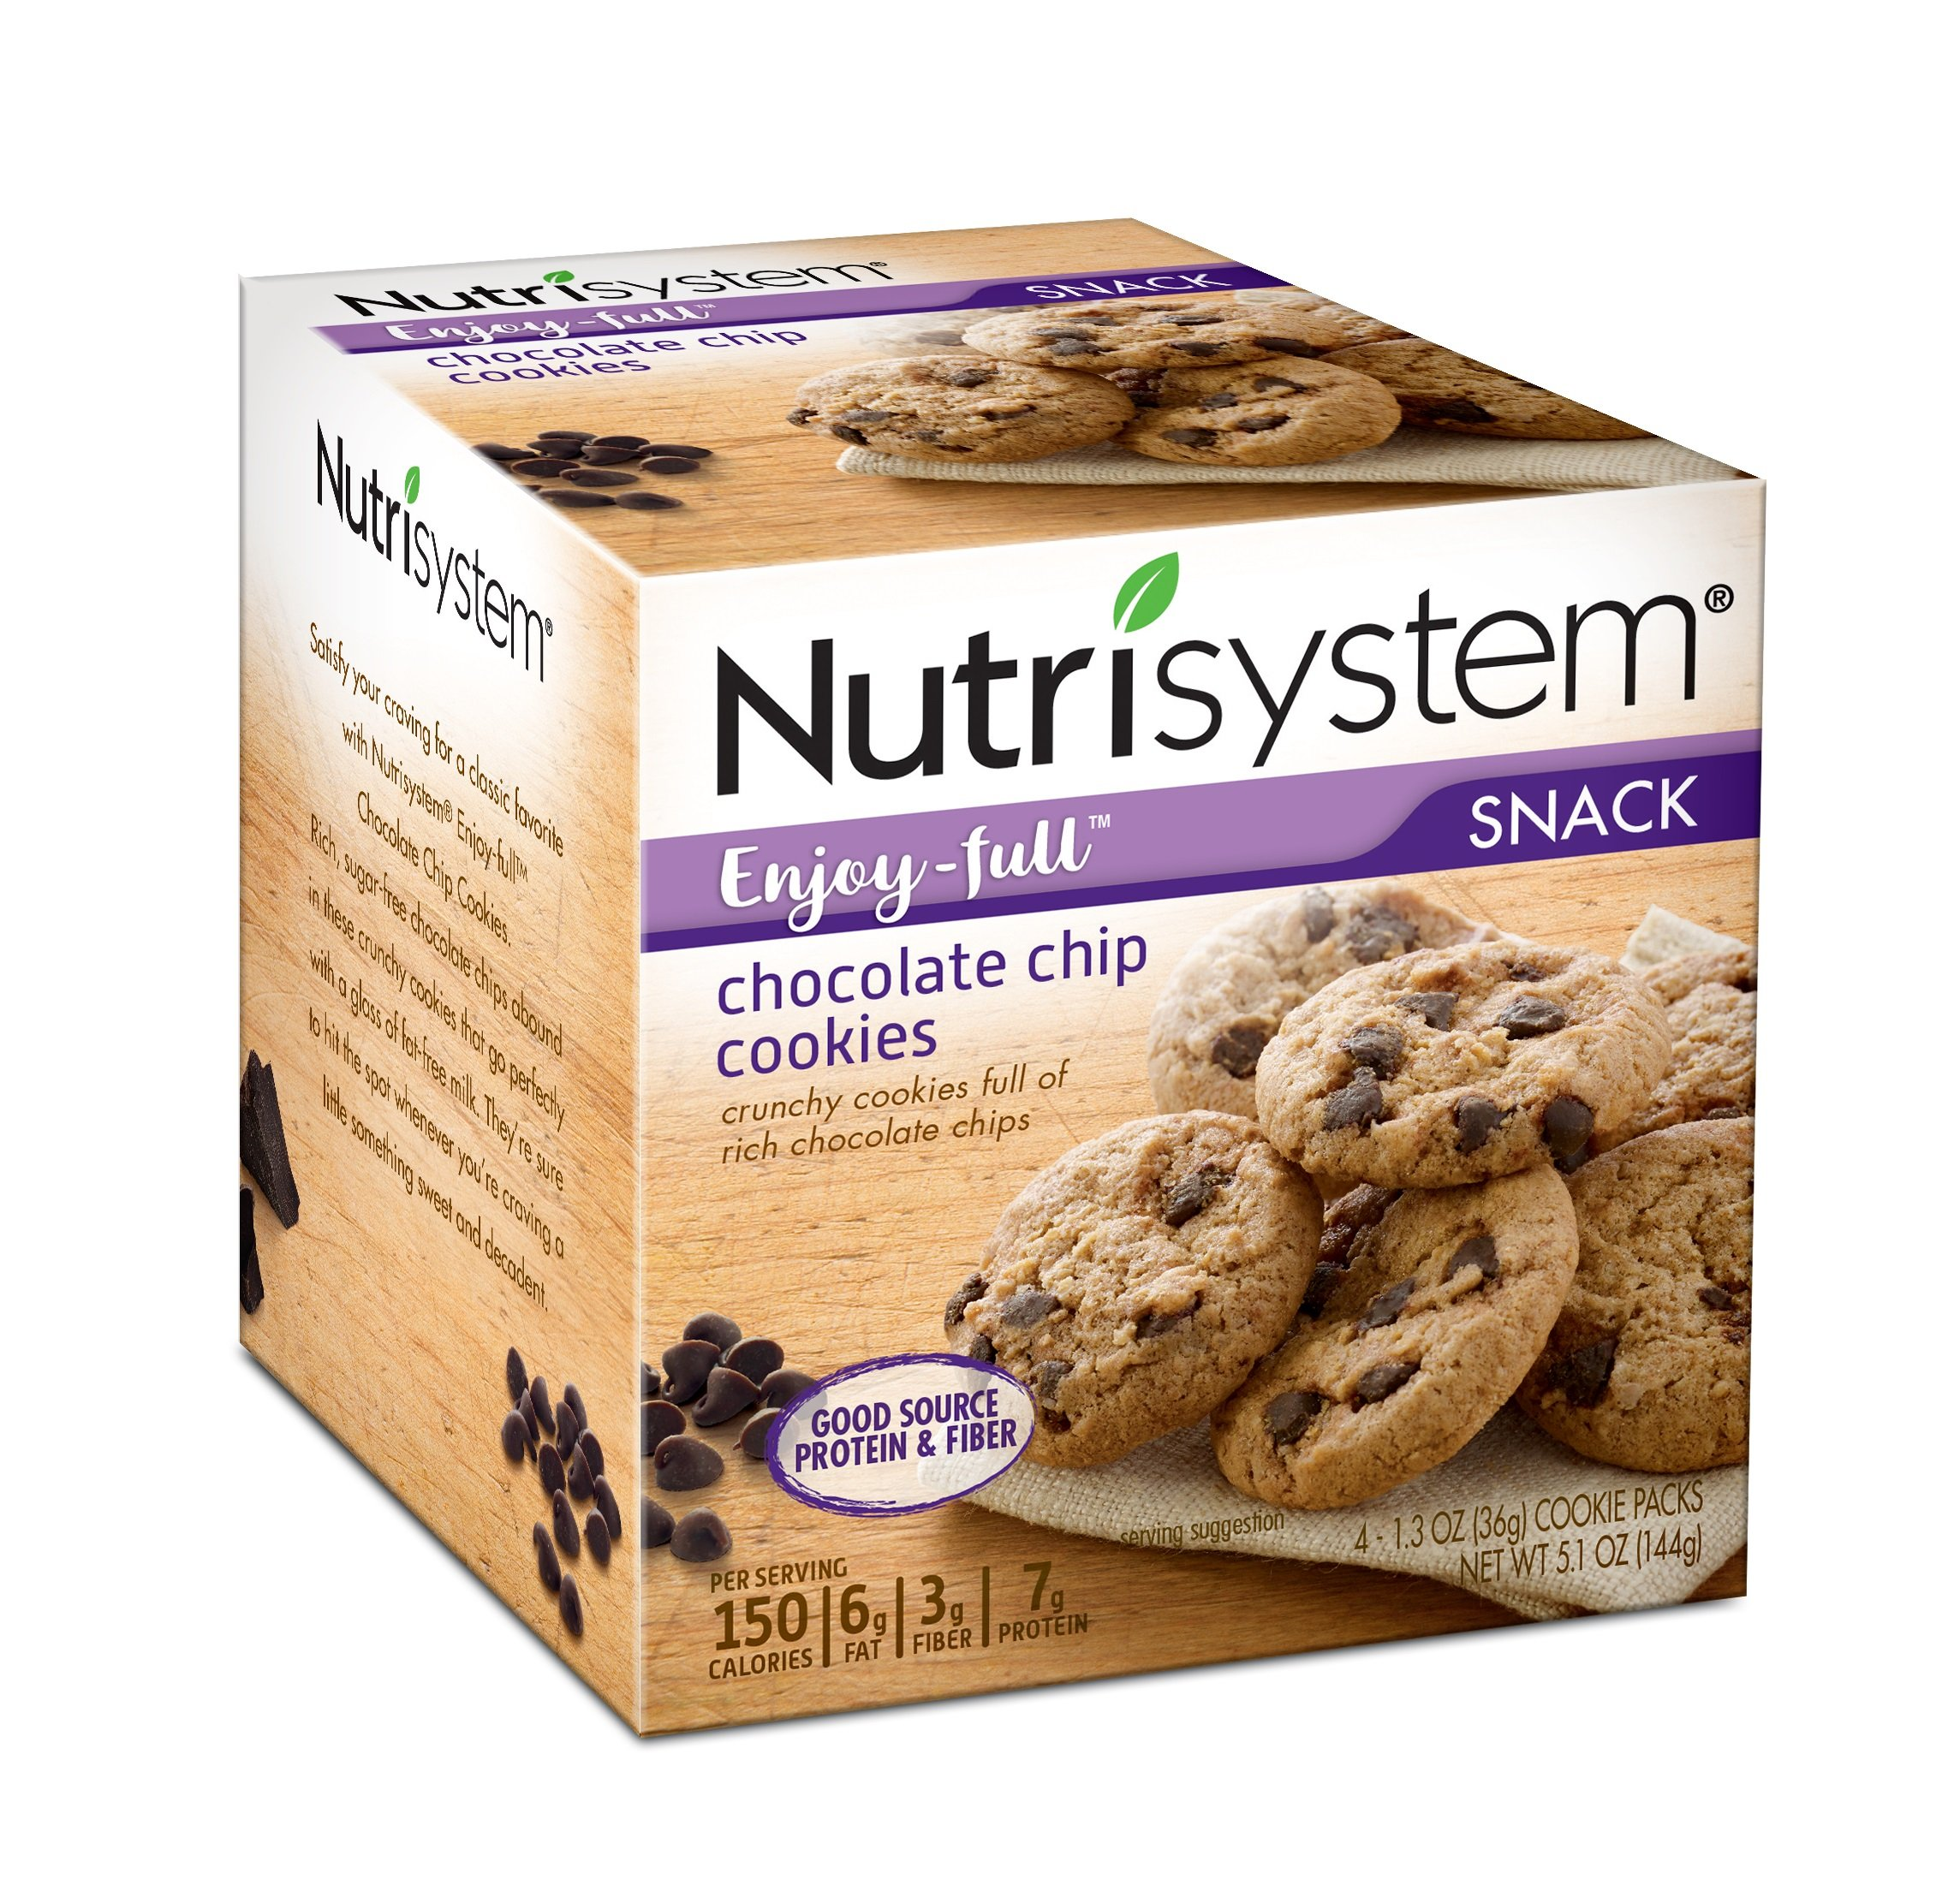 Nutrisystem® Enjoy-full™ Chocolate Chip Cookies (8 count)